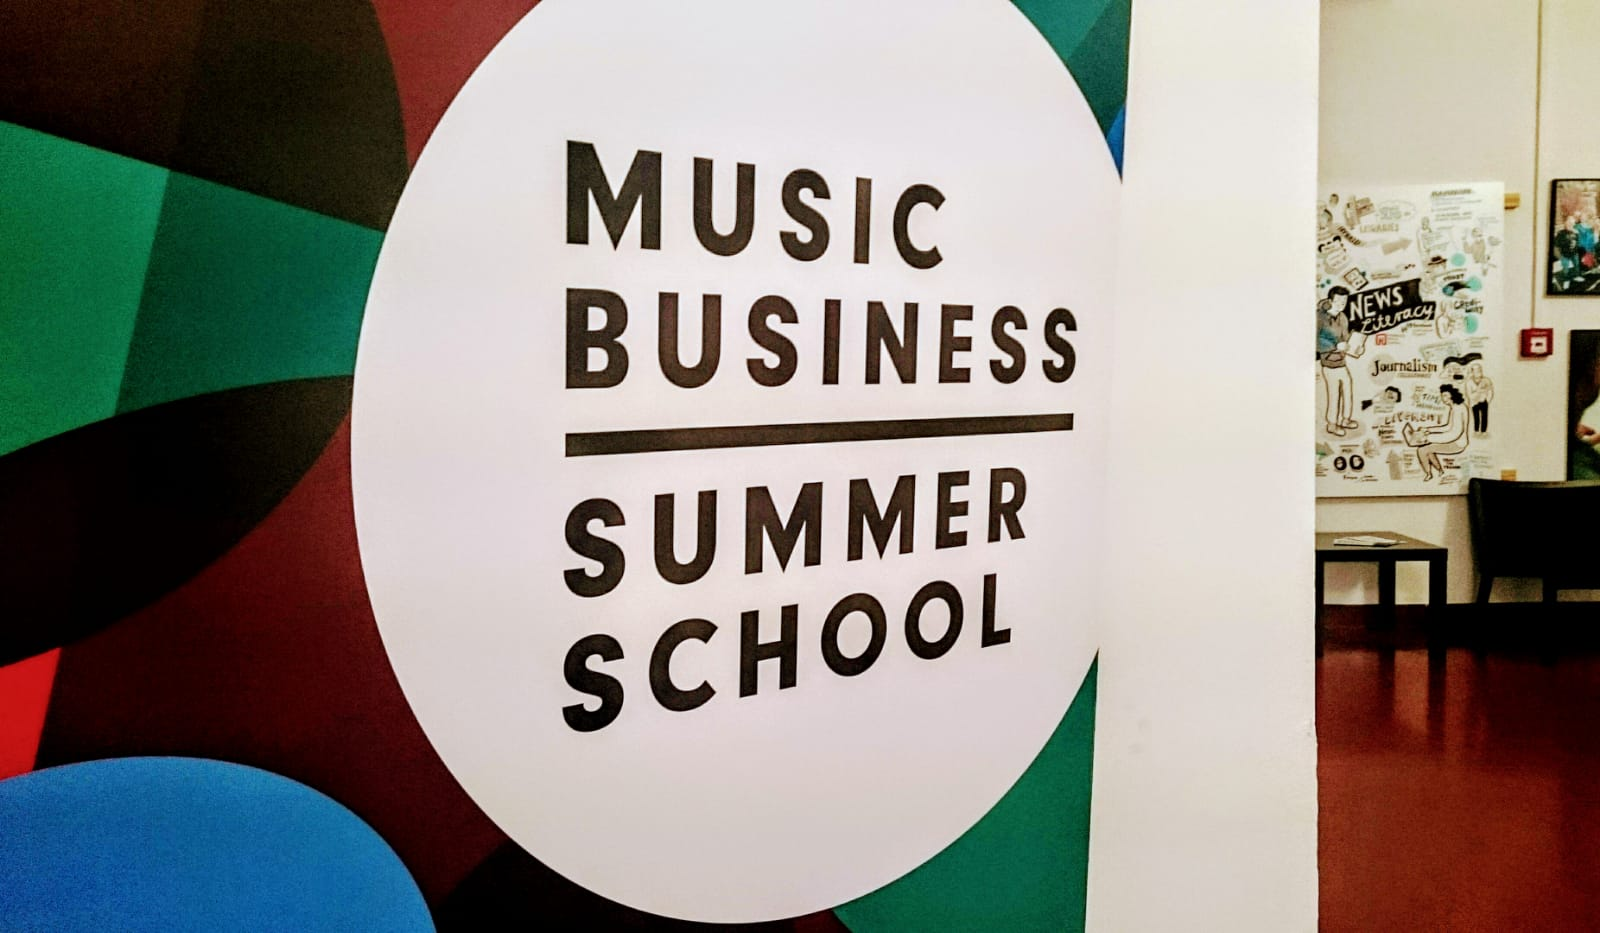 Music Business Summer School, Hamburg Media School, IHM, Tik Tok, Twitch, Marketing, Music Promotion, Pop, Business, Apps, Digital Marketing, Social Media, Workshops, classrooms